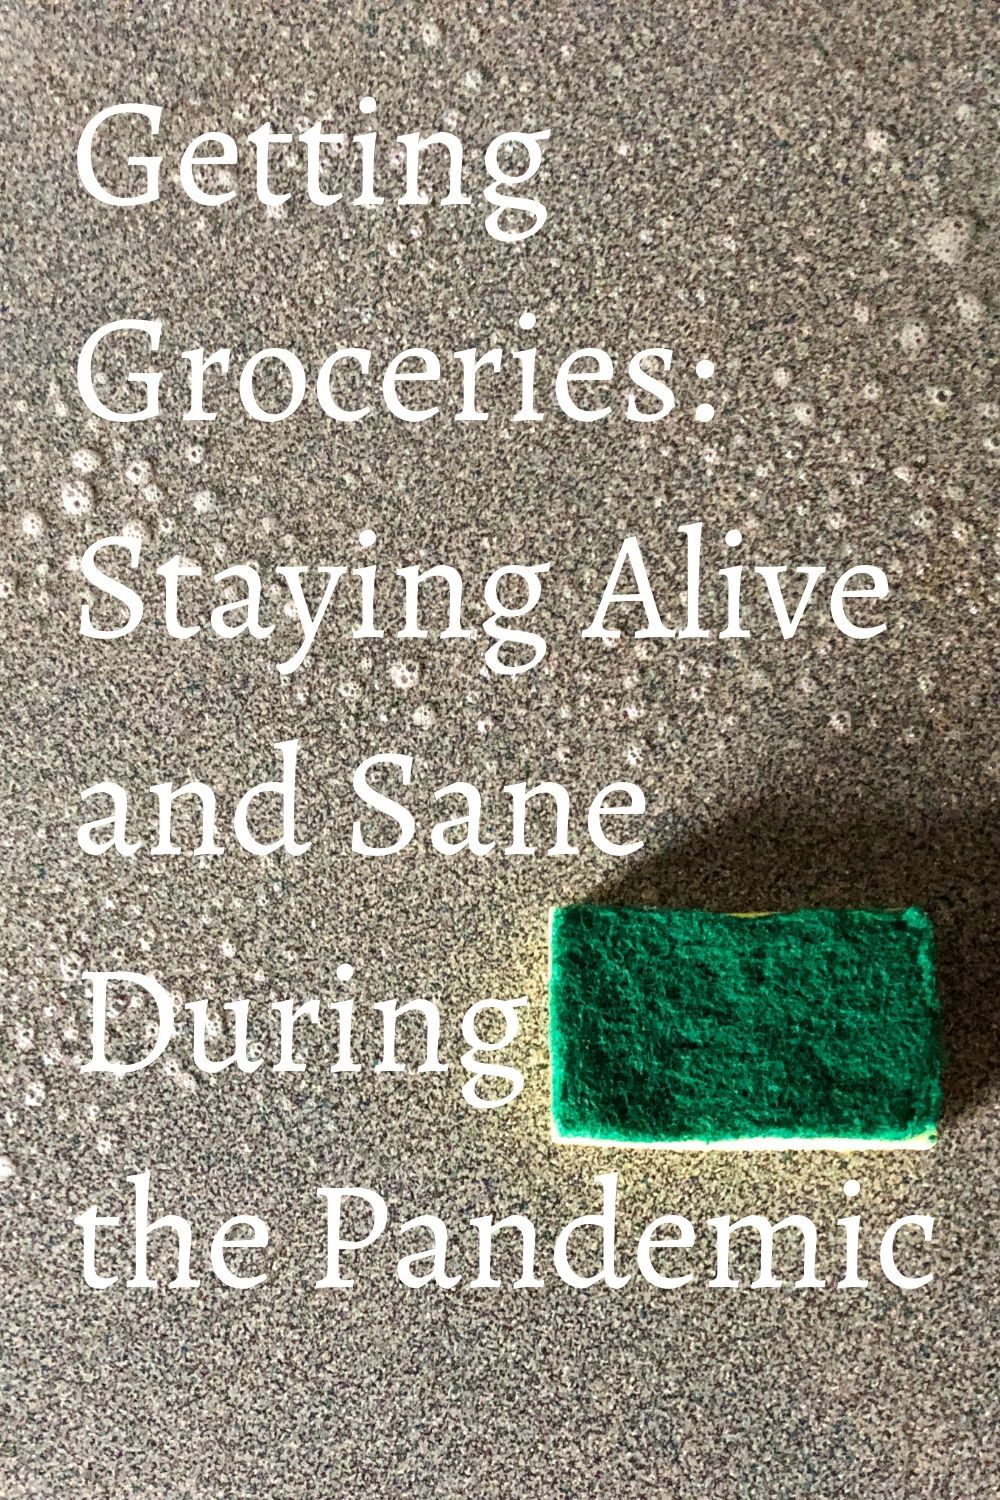 Getting Groceries: Staying Alive & Sane During the Pandemic